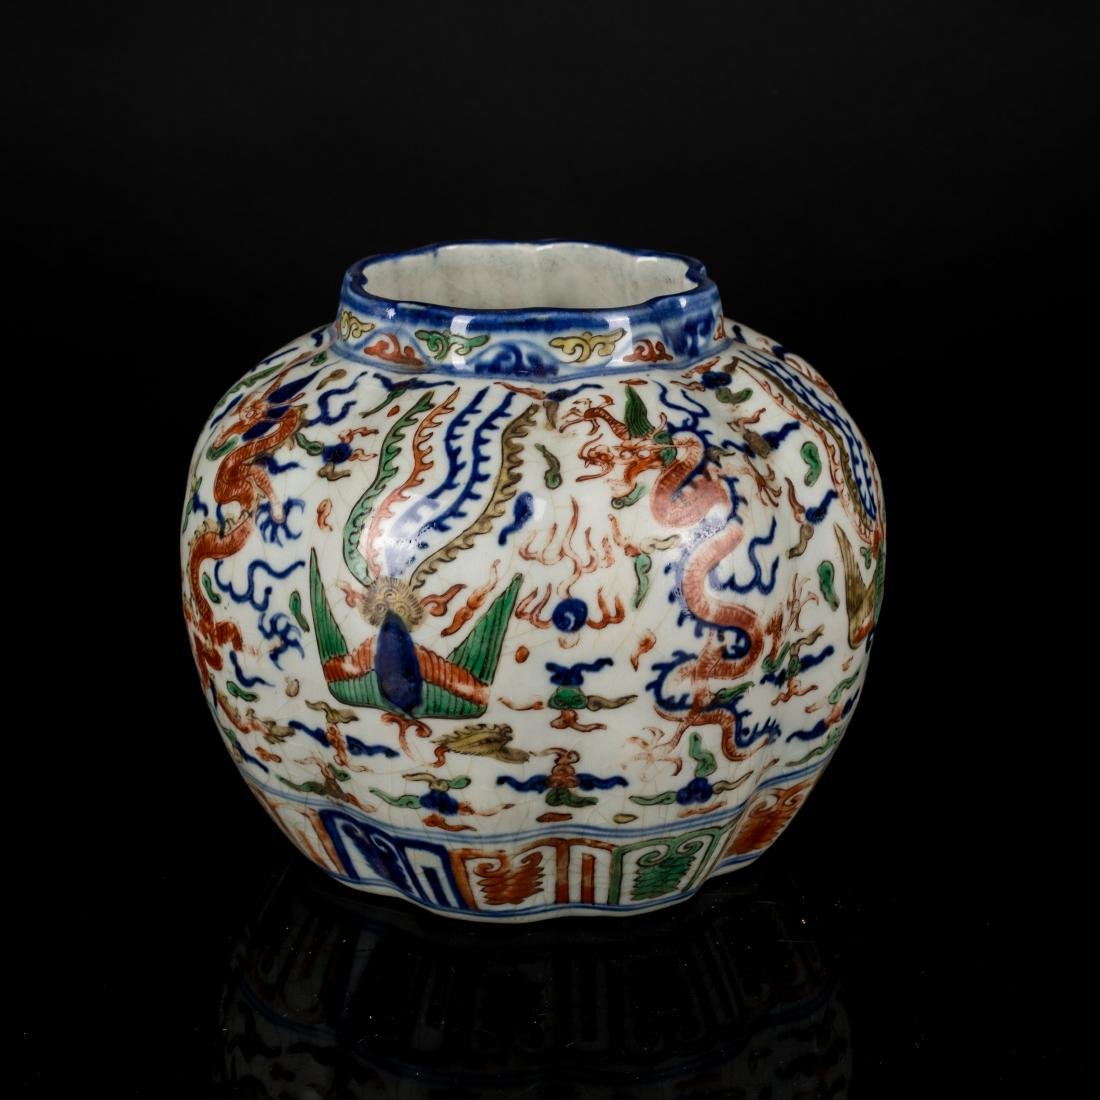 Jiajing Mark Antique Wucai Jar - 2